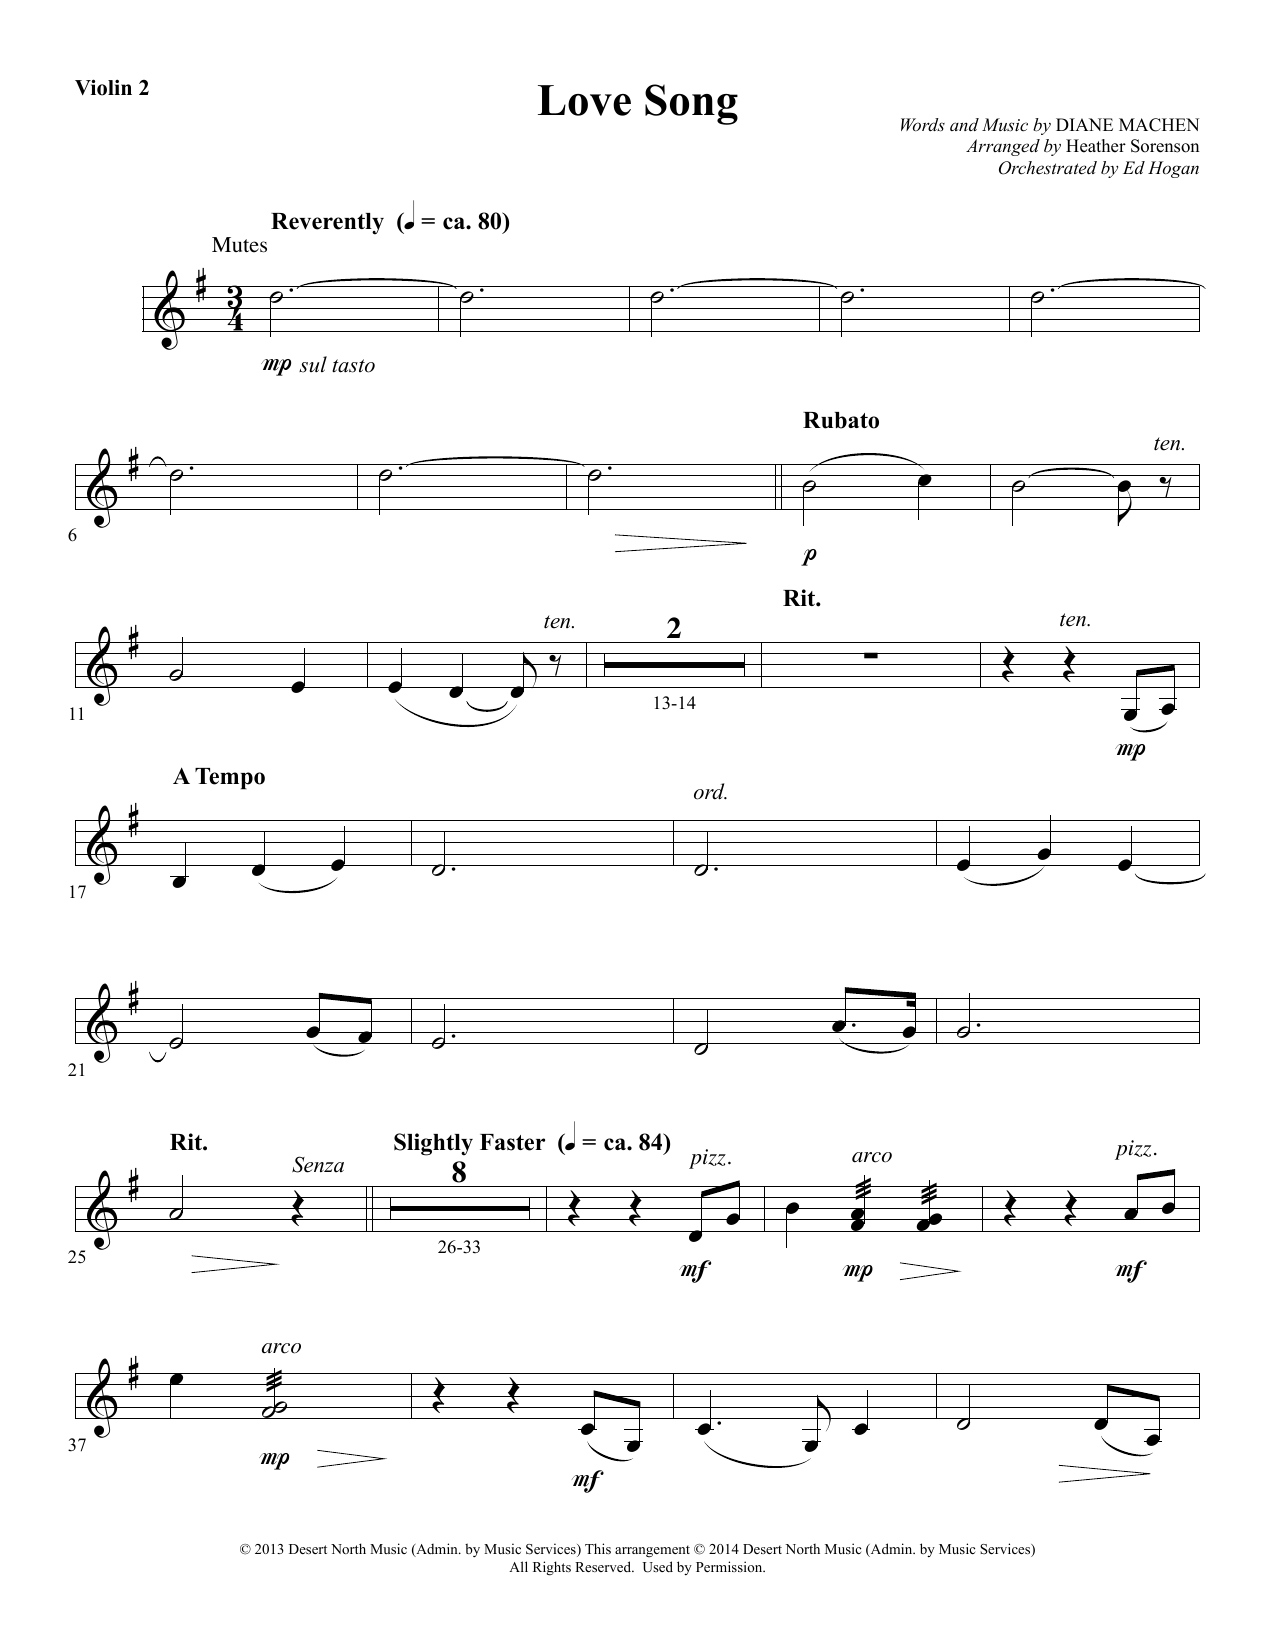 Heather Sorenson Love Song - Violin 2 sheet music notes and chords. Download Printable PDF.